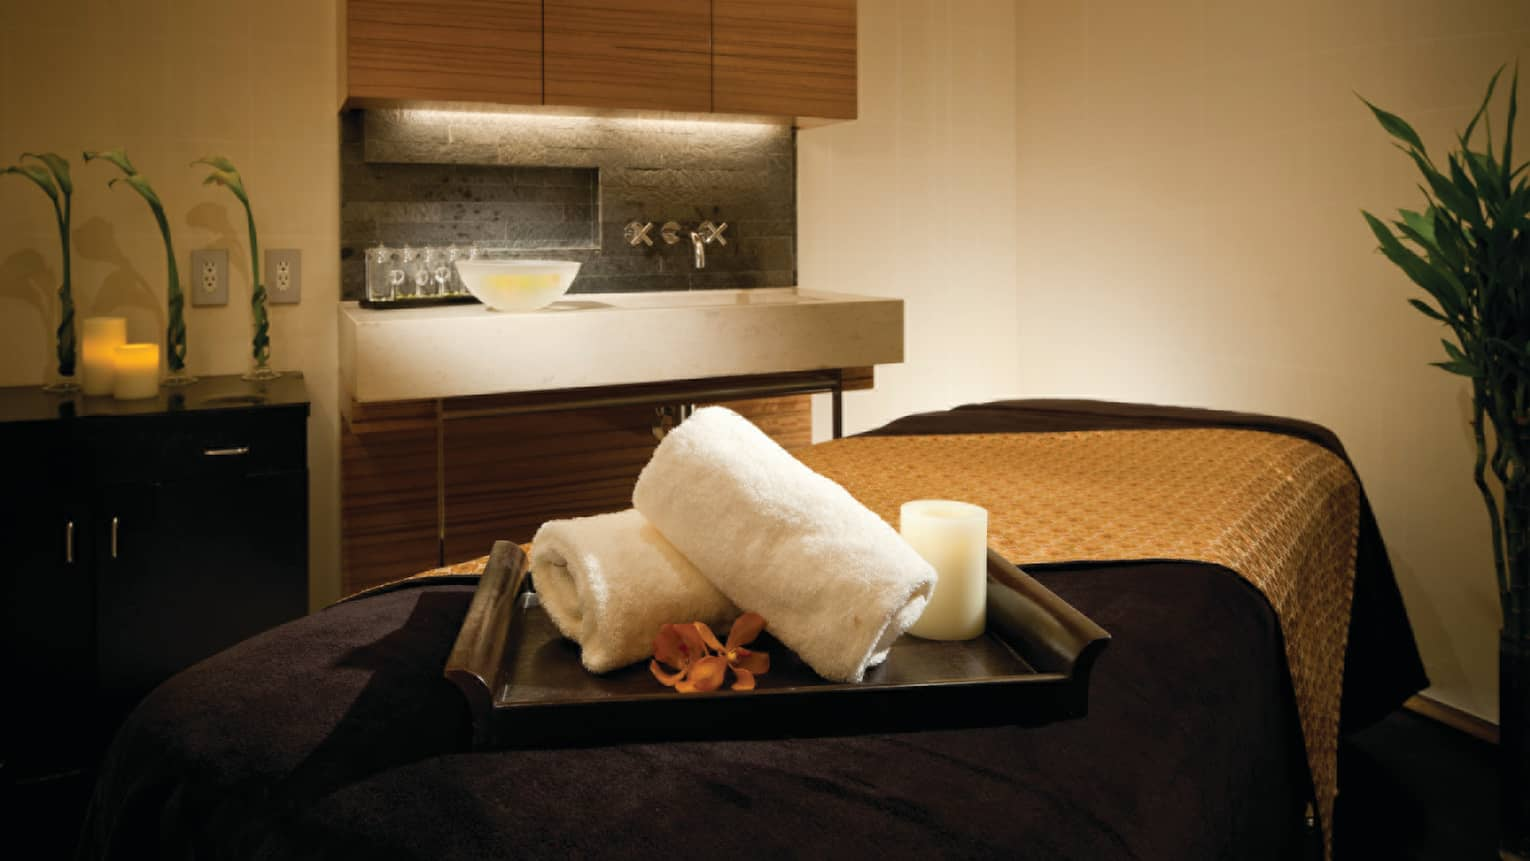 Spa treatment room, bamboo tray with towels, candles, flower on massage bed